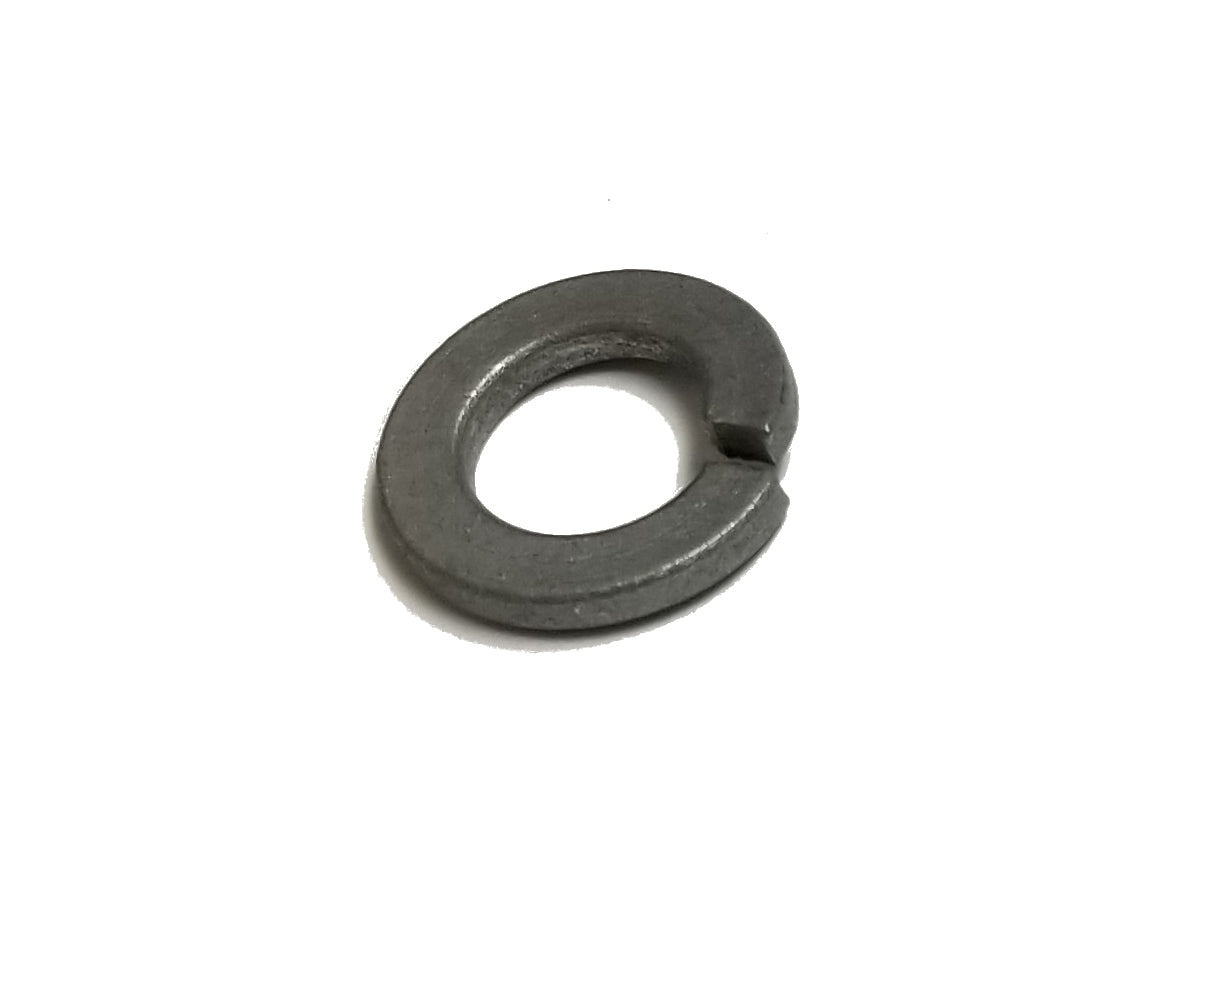 John Deere Original Equipment Lock Washer - 12M7065